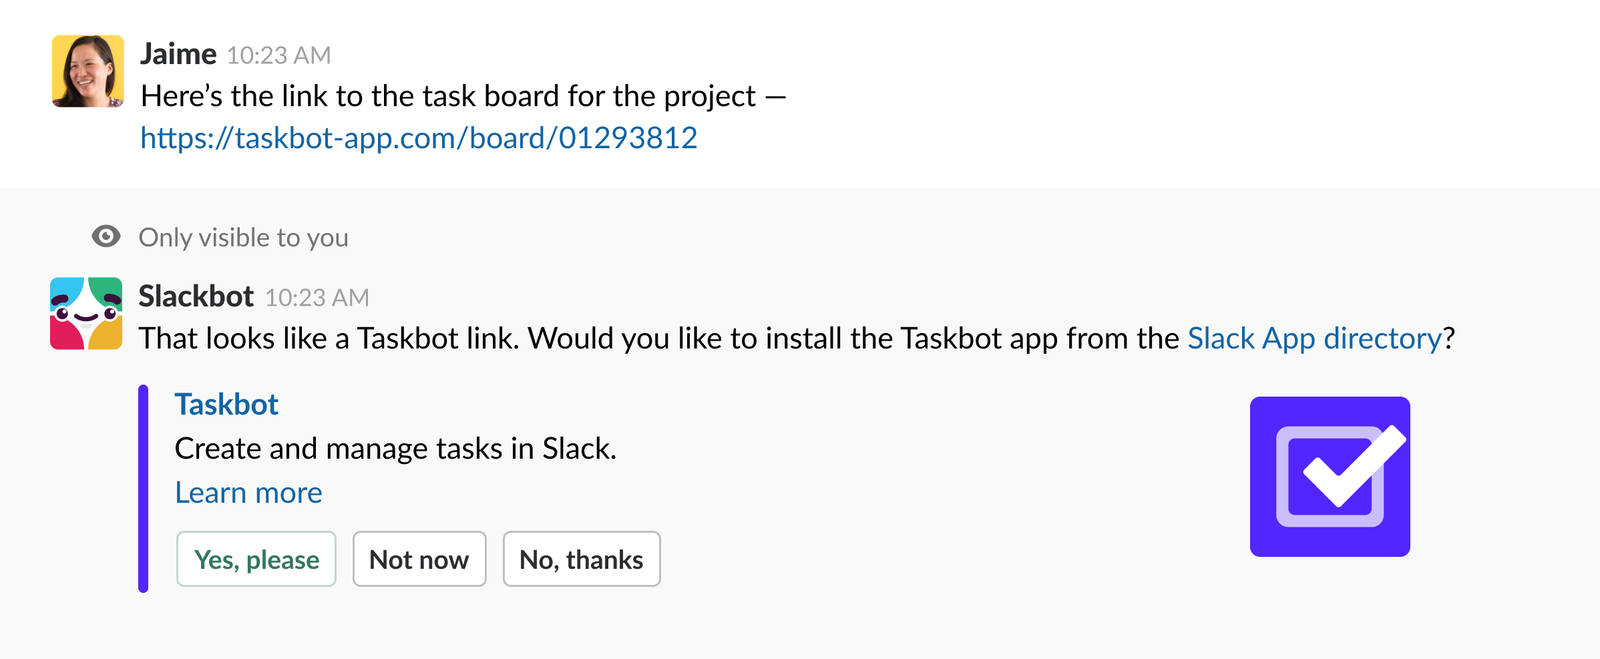 user posting taskbot link, response from slackbot to install taskbot